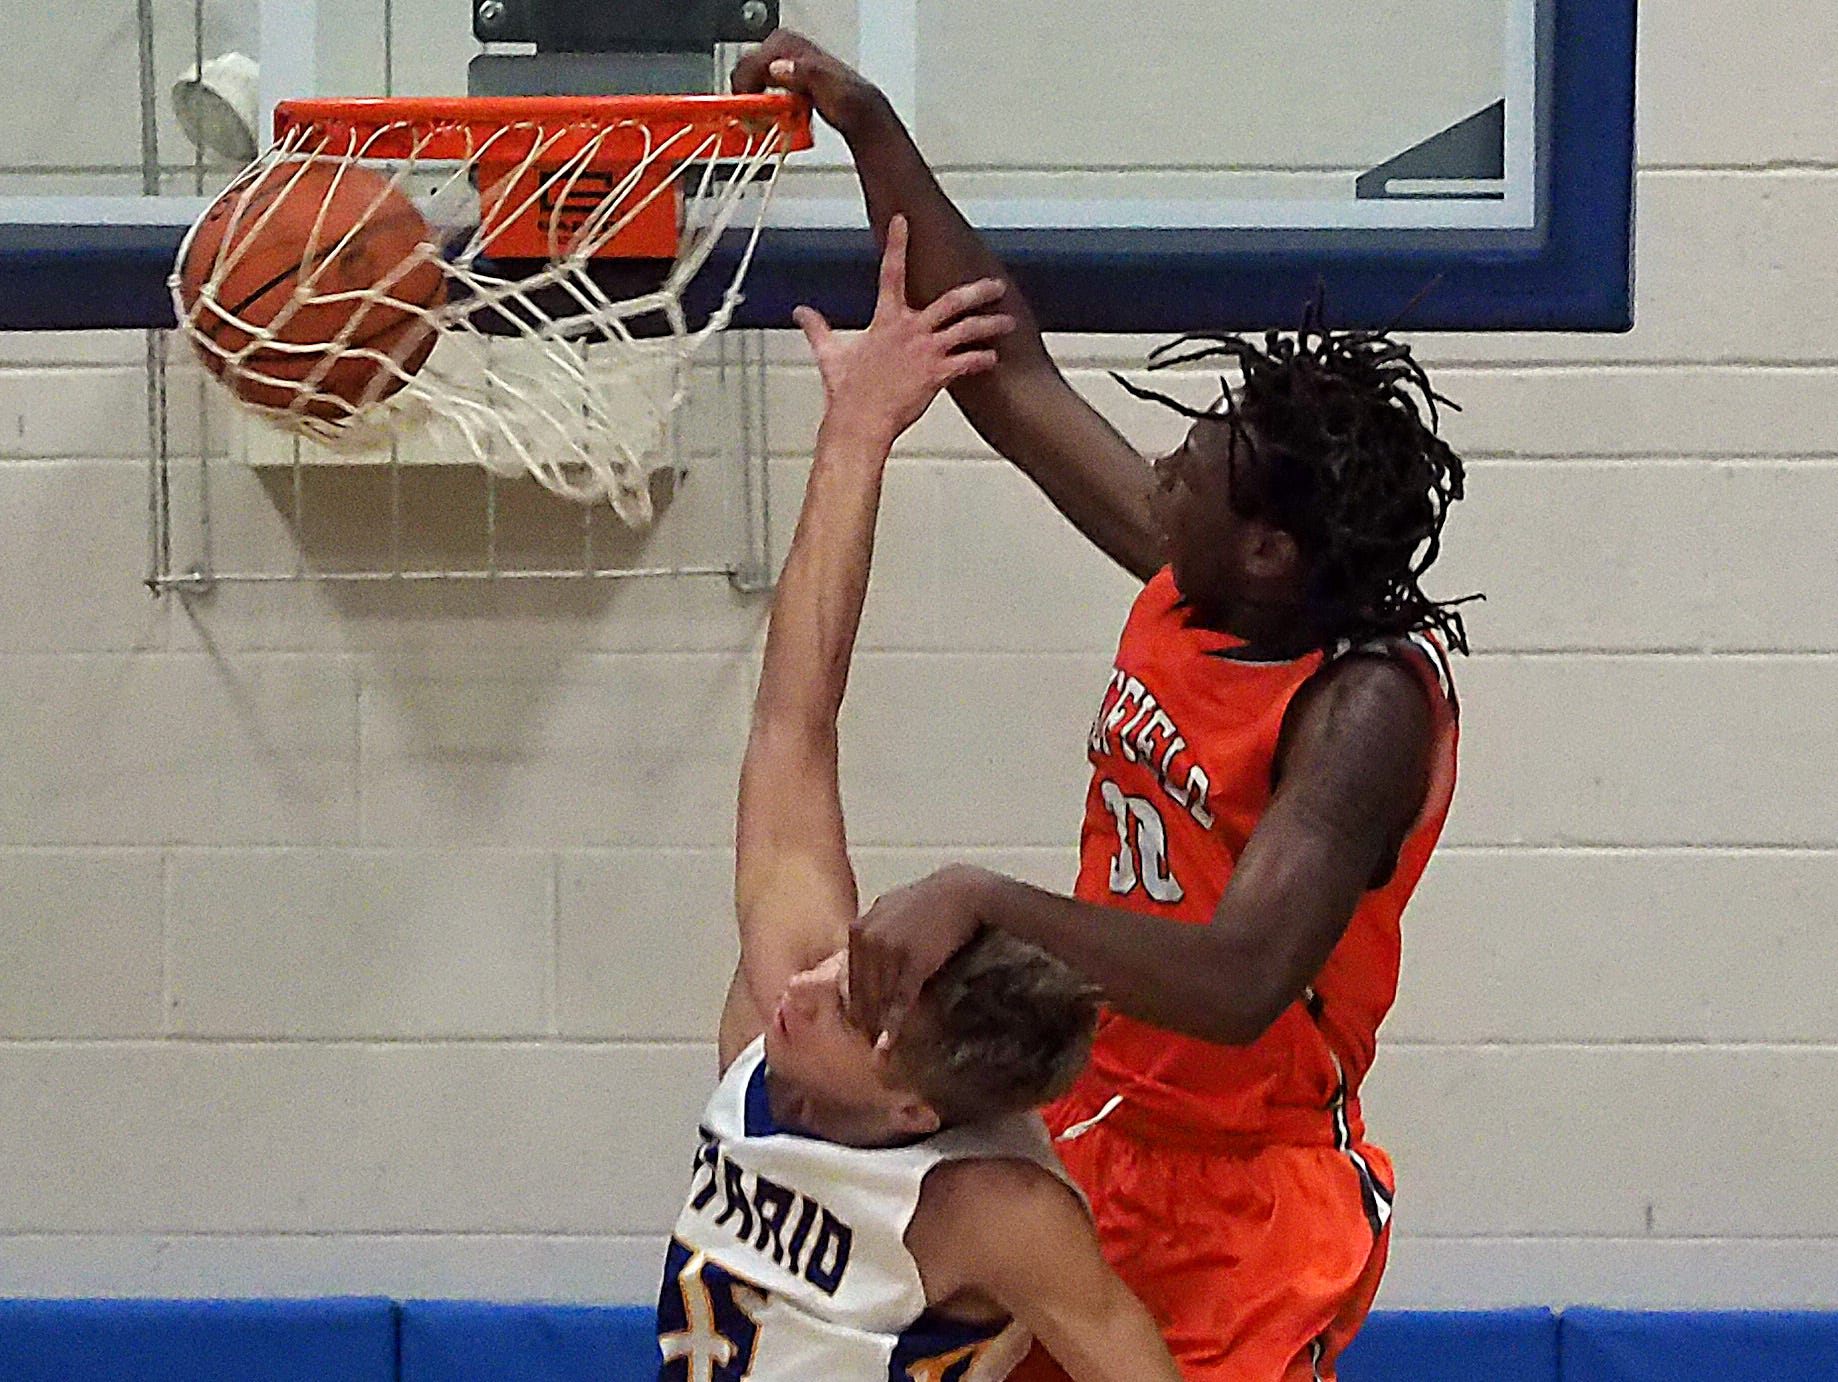 Mansfield Senior's Mario Young dunks over Ontario's Corey Thomas and draws the foul during their game Friday night at Ontario High School.